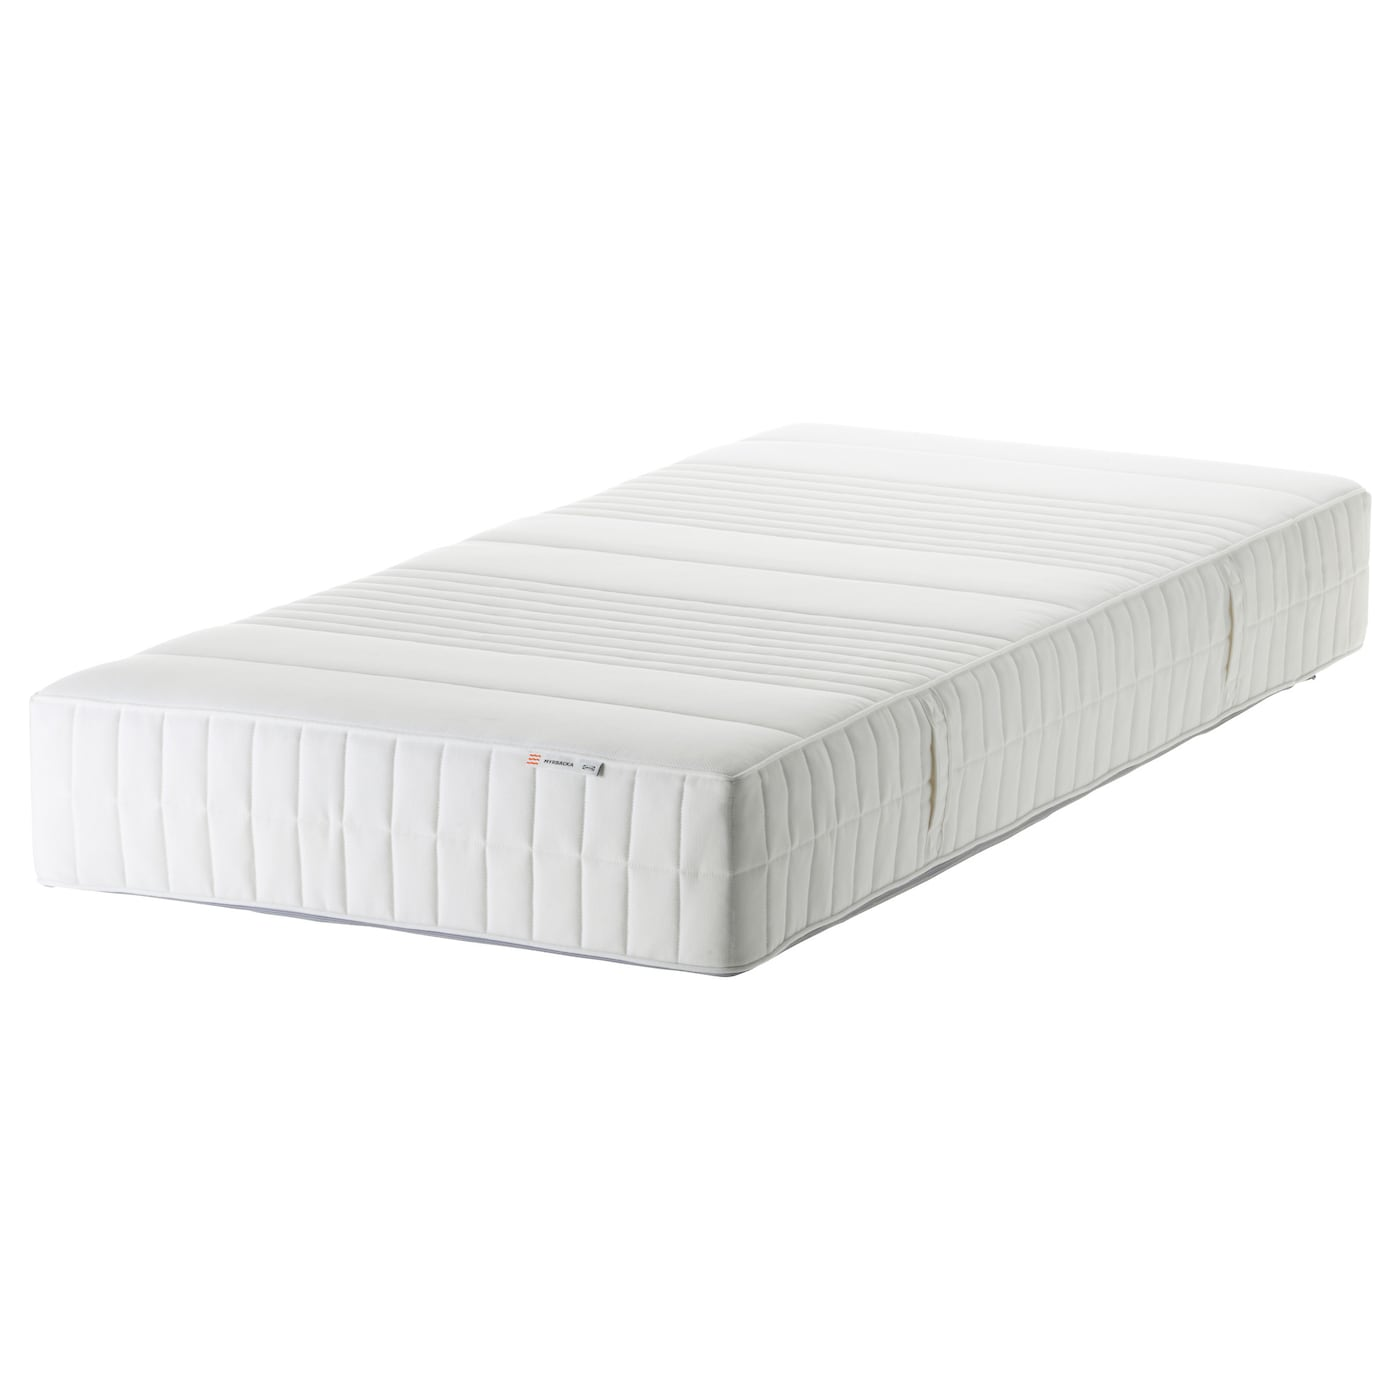 myrbacka matelas latex mi ferme blanc 90x200 cm ikea. Black Bedroom Furniture Sets. Home Design Ideas